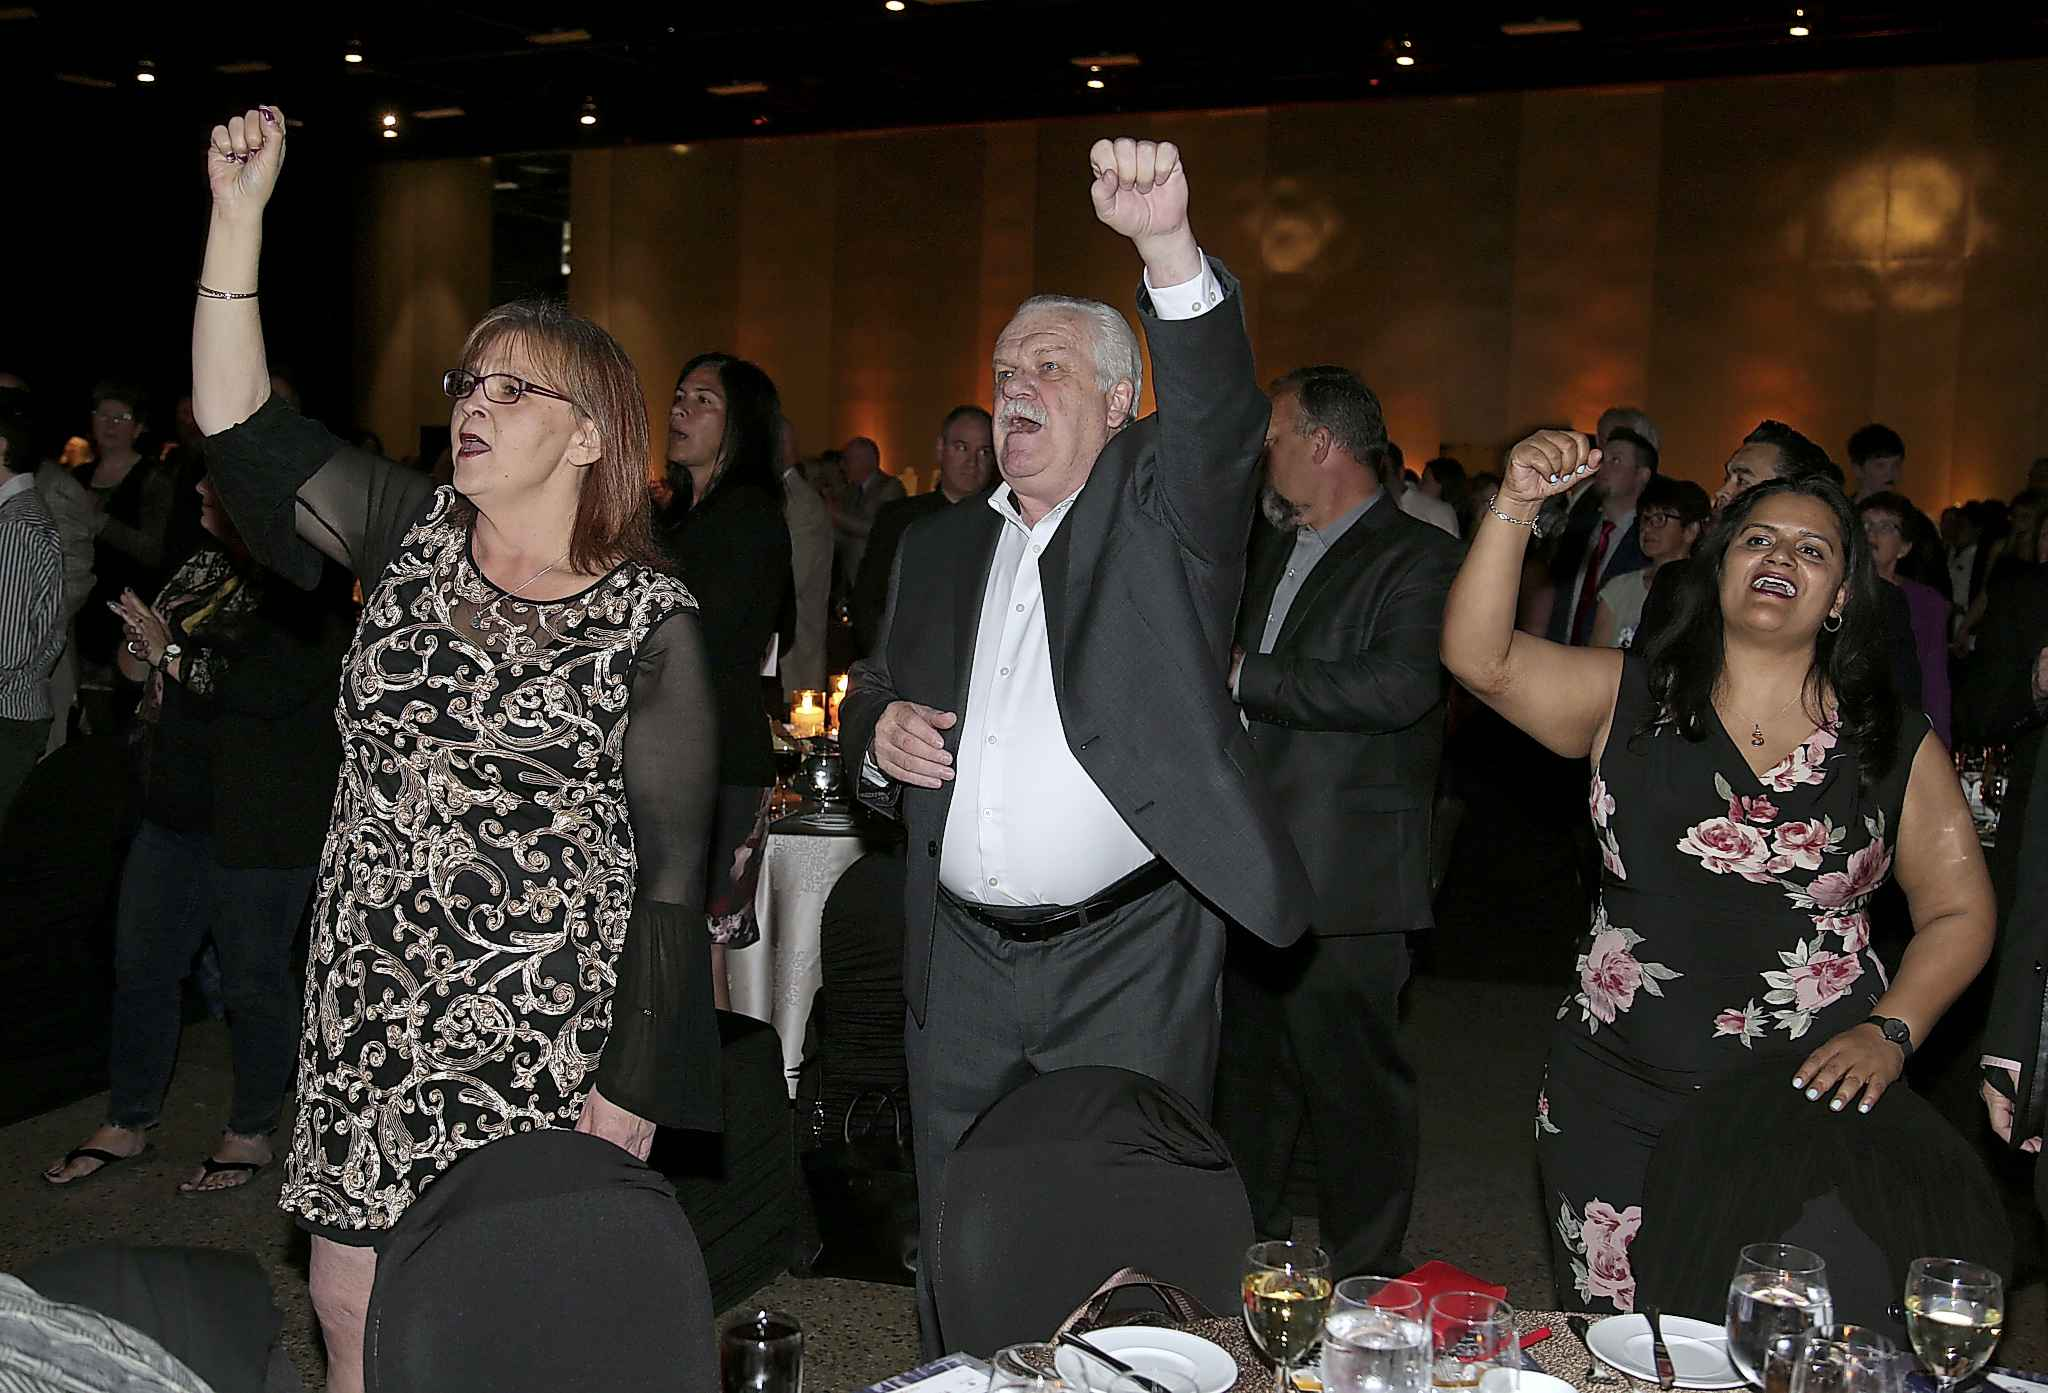 Marianne Hladun, left, Chris Aylward and Sharon DeSouza of PSAC sing along with a rendition of 'Solidarity Forever' at the Winnipeg General Strike Centennial Gala Dinner presented by Manitoba's unions Wednesday evening at the RBC Convention Centre Winnipeg.